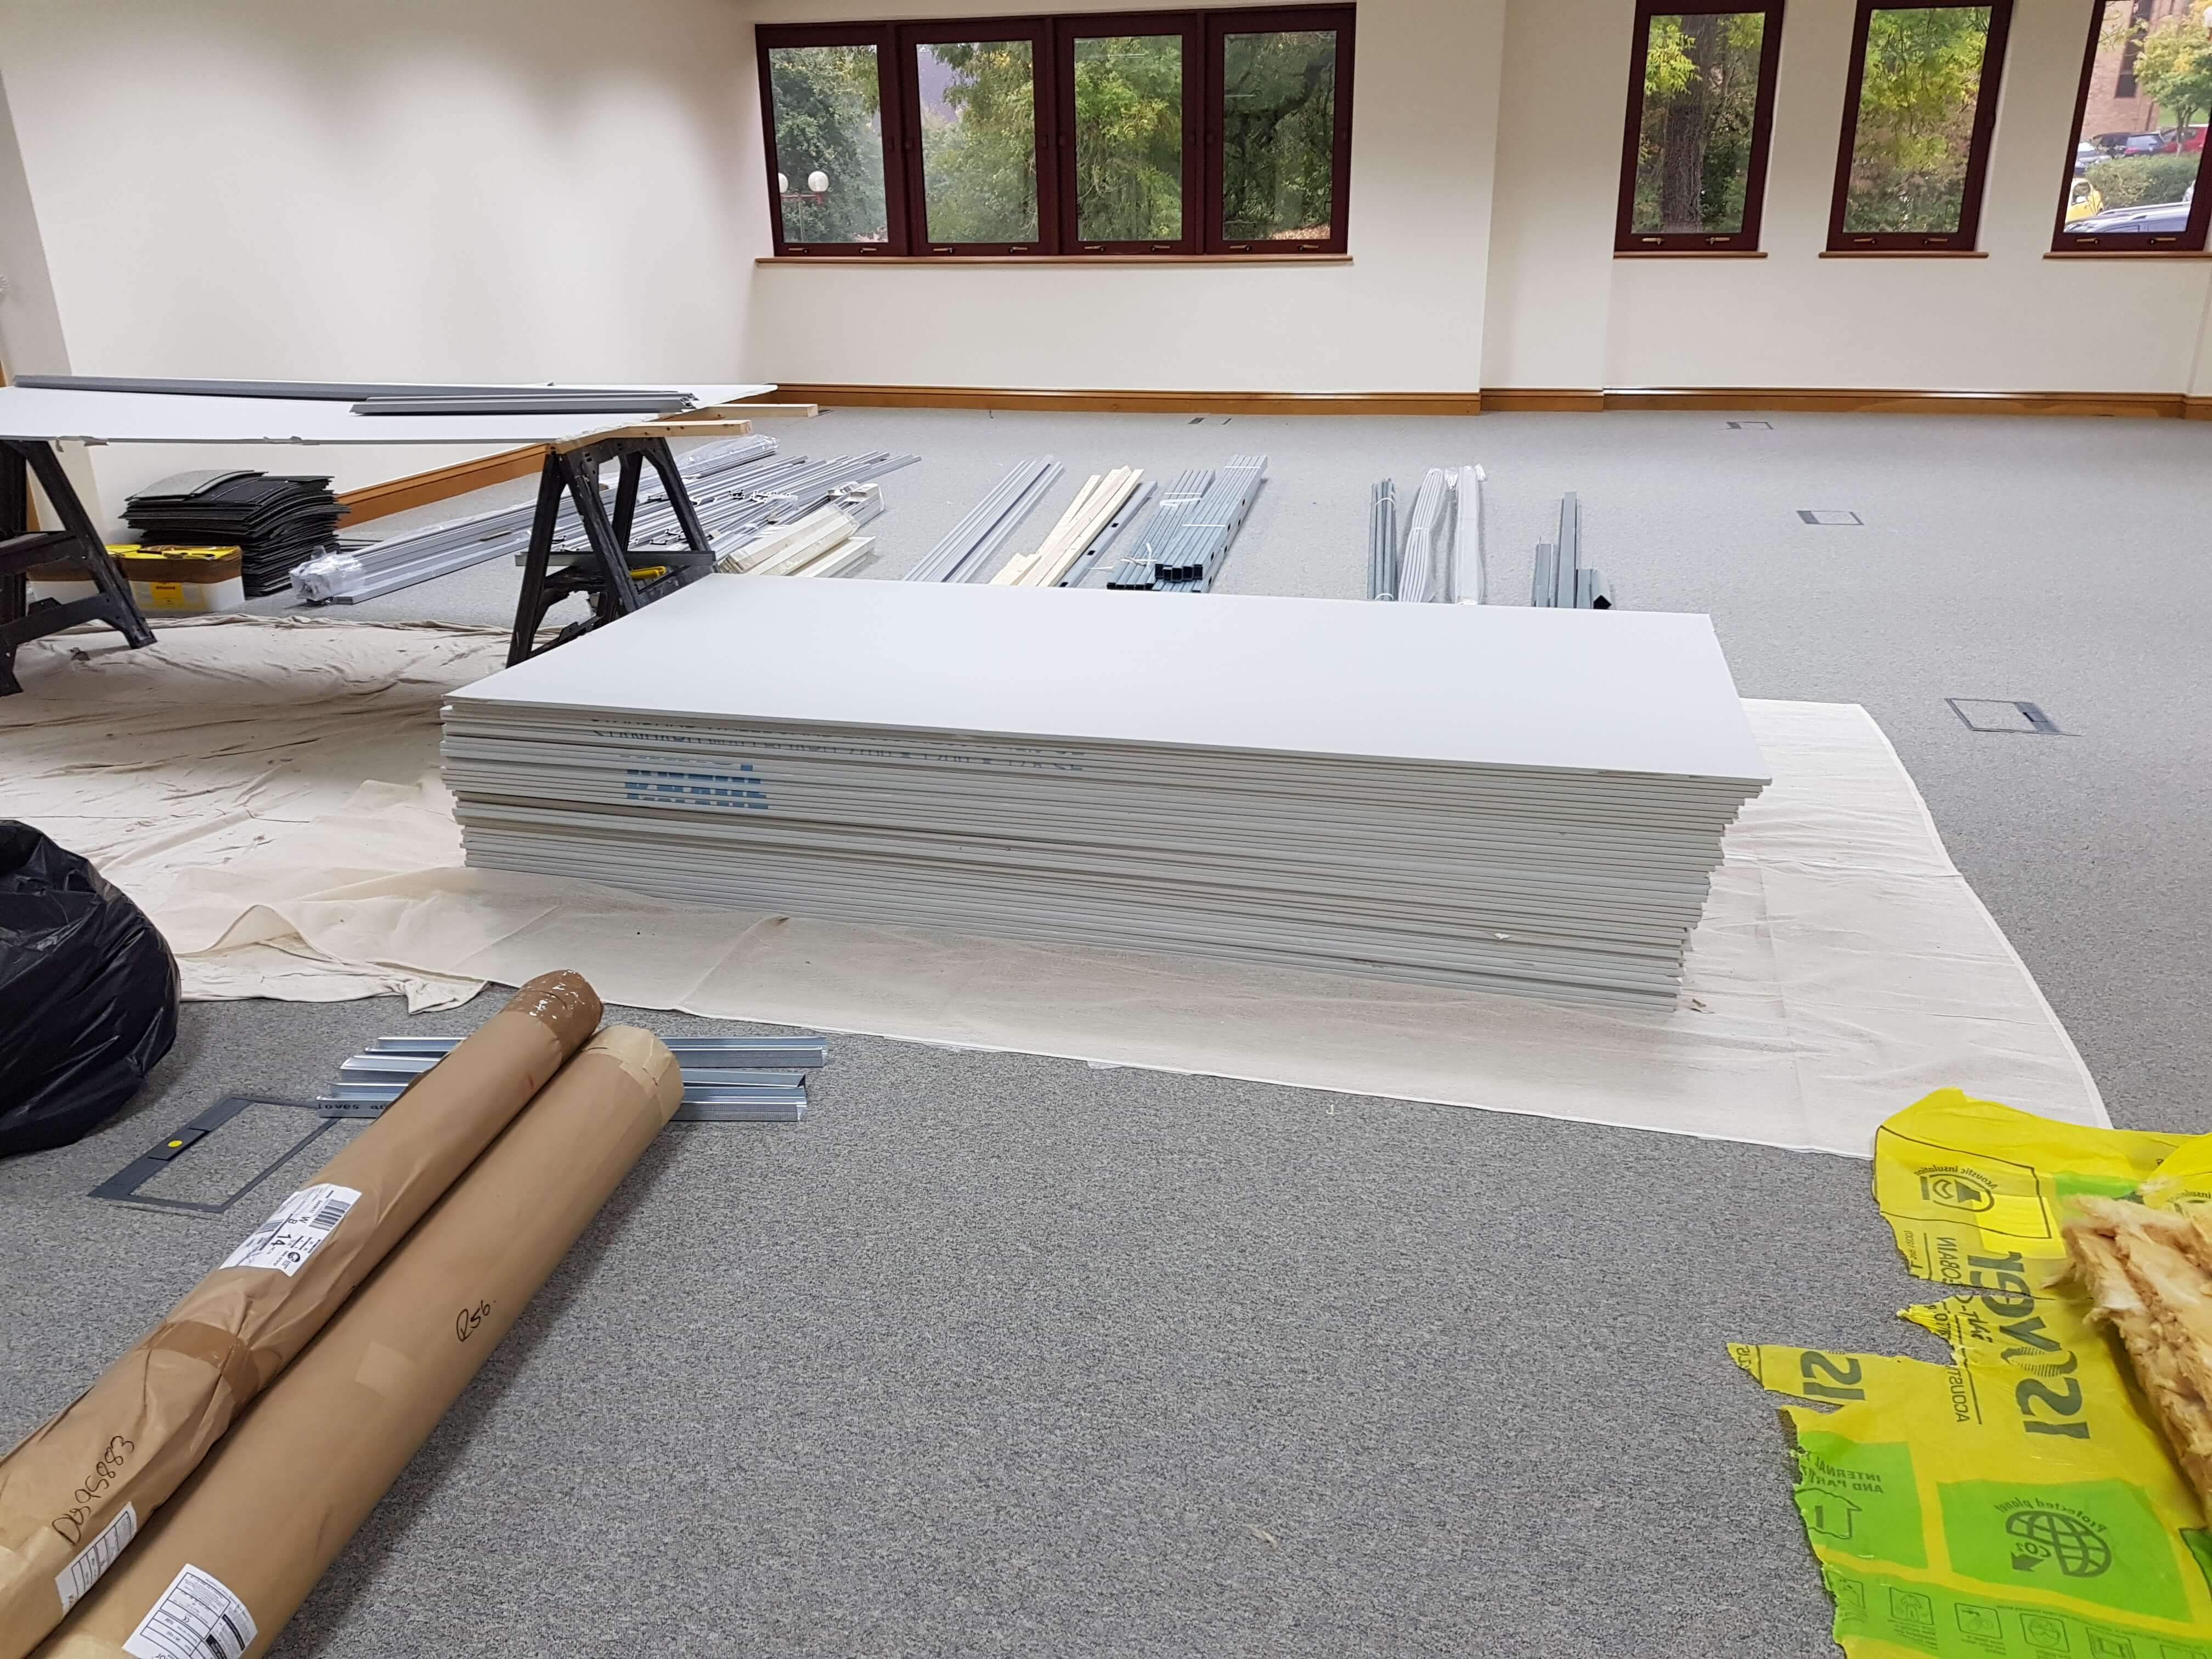 Plasterboard arrives for the demountable partitioning